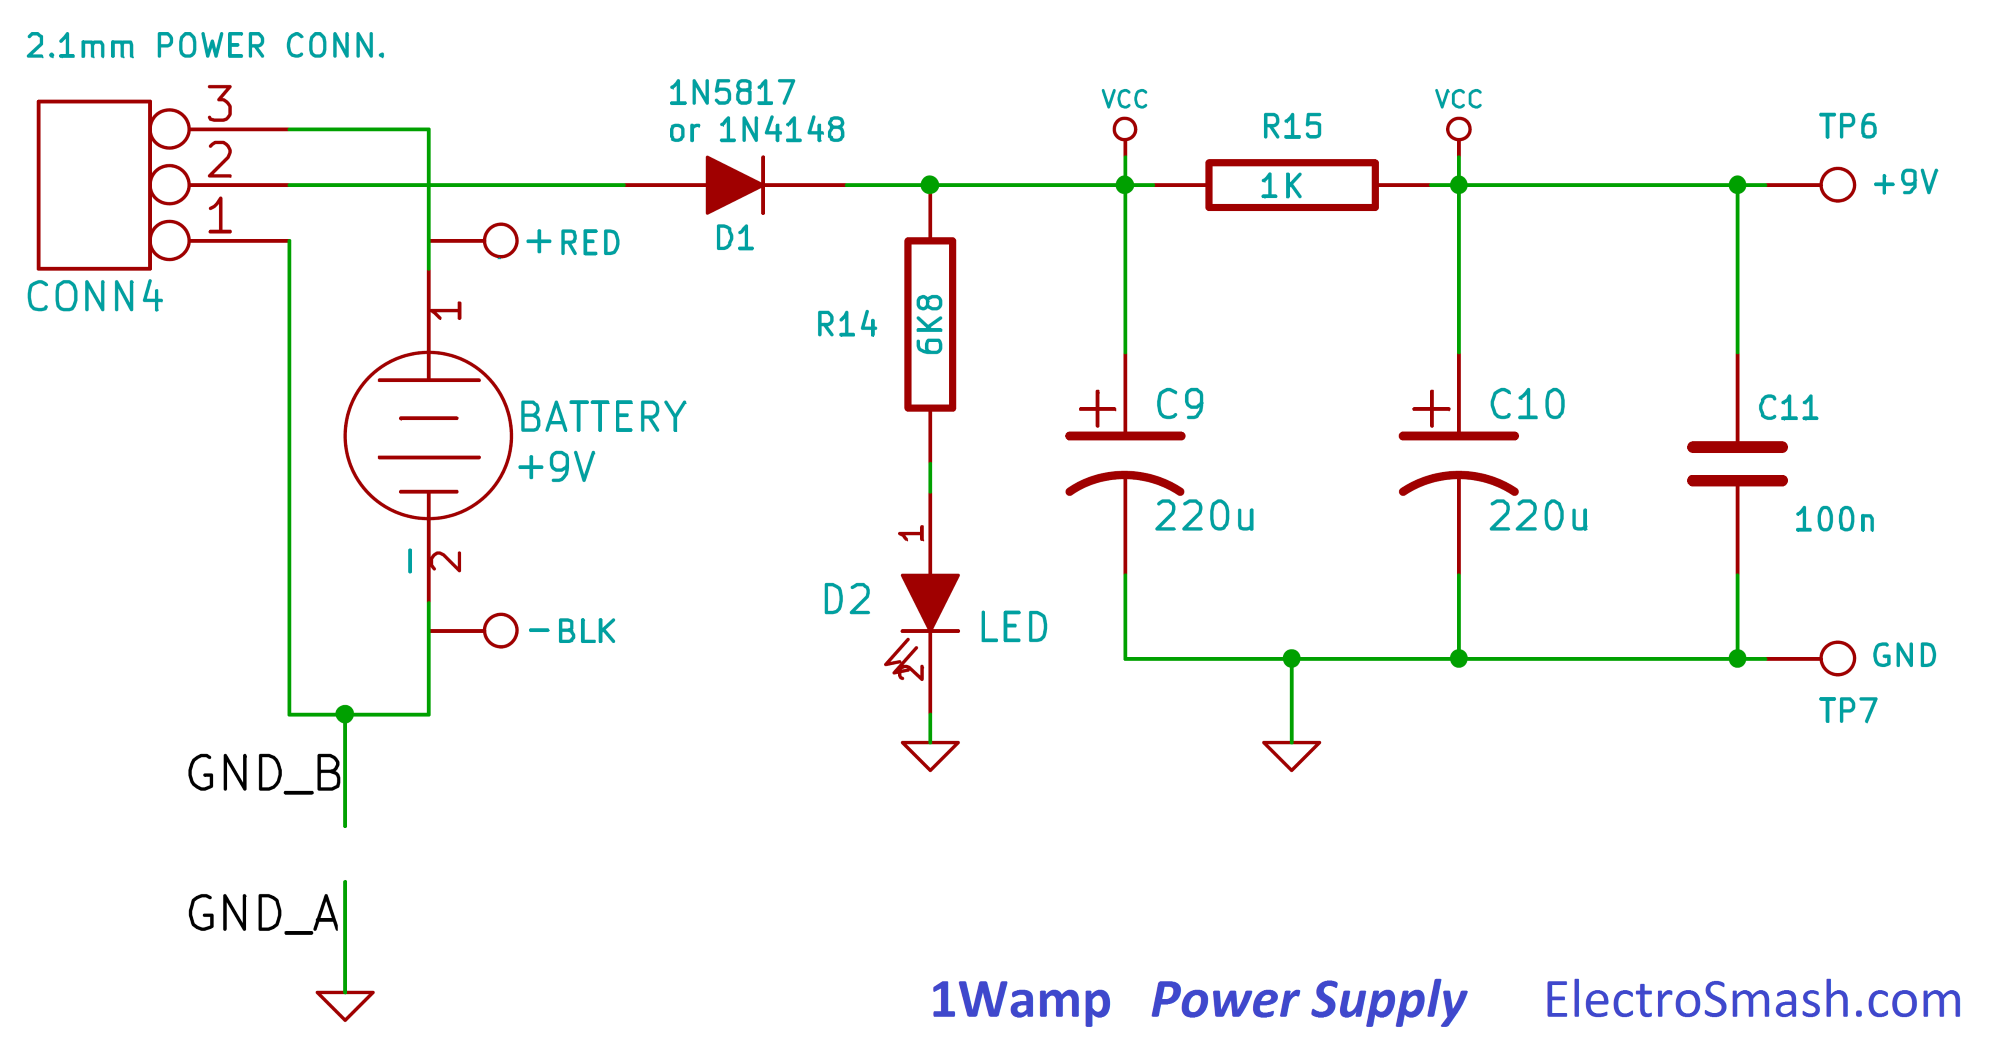 Electrosmash 1wamp Electroc Guitar Amplifier Circuit Schematic Audio Power Technology Co Ltd Supply Stage